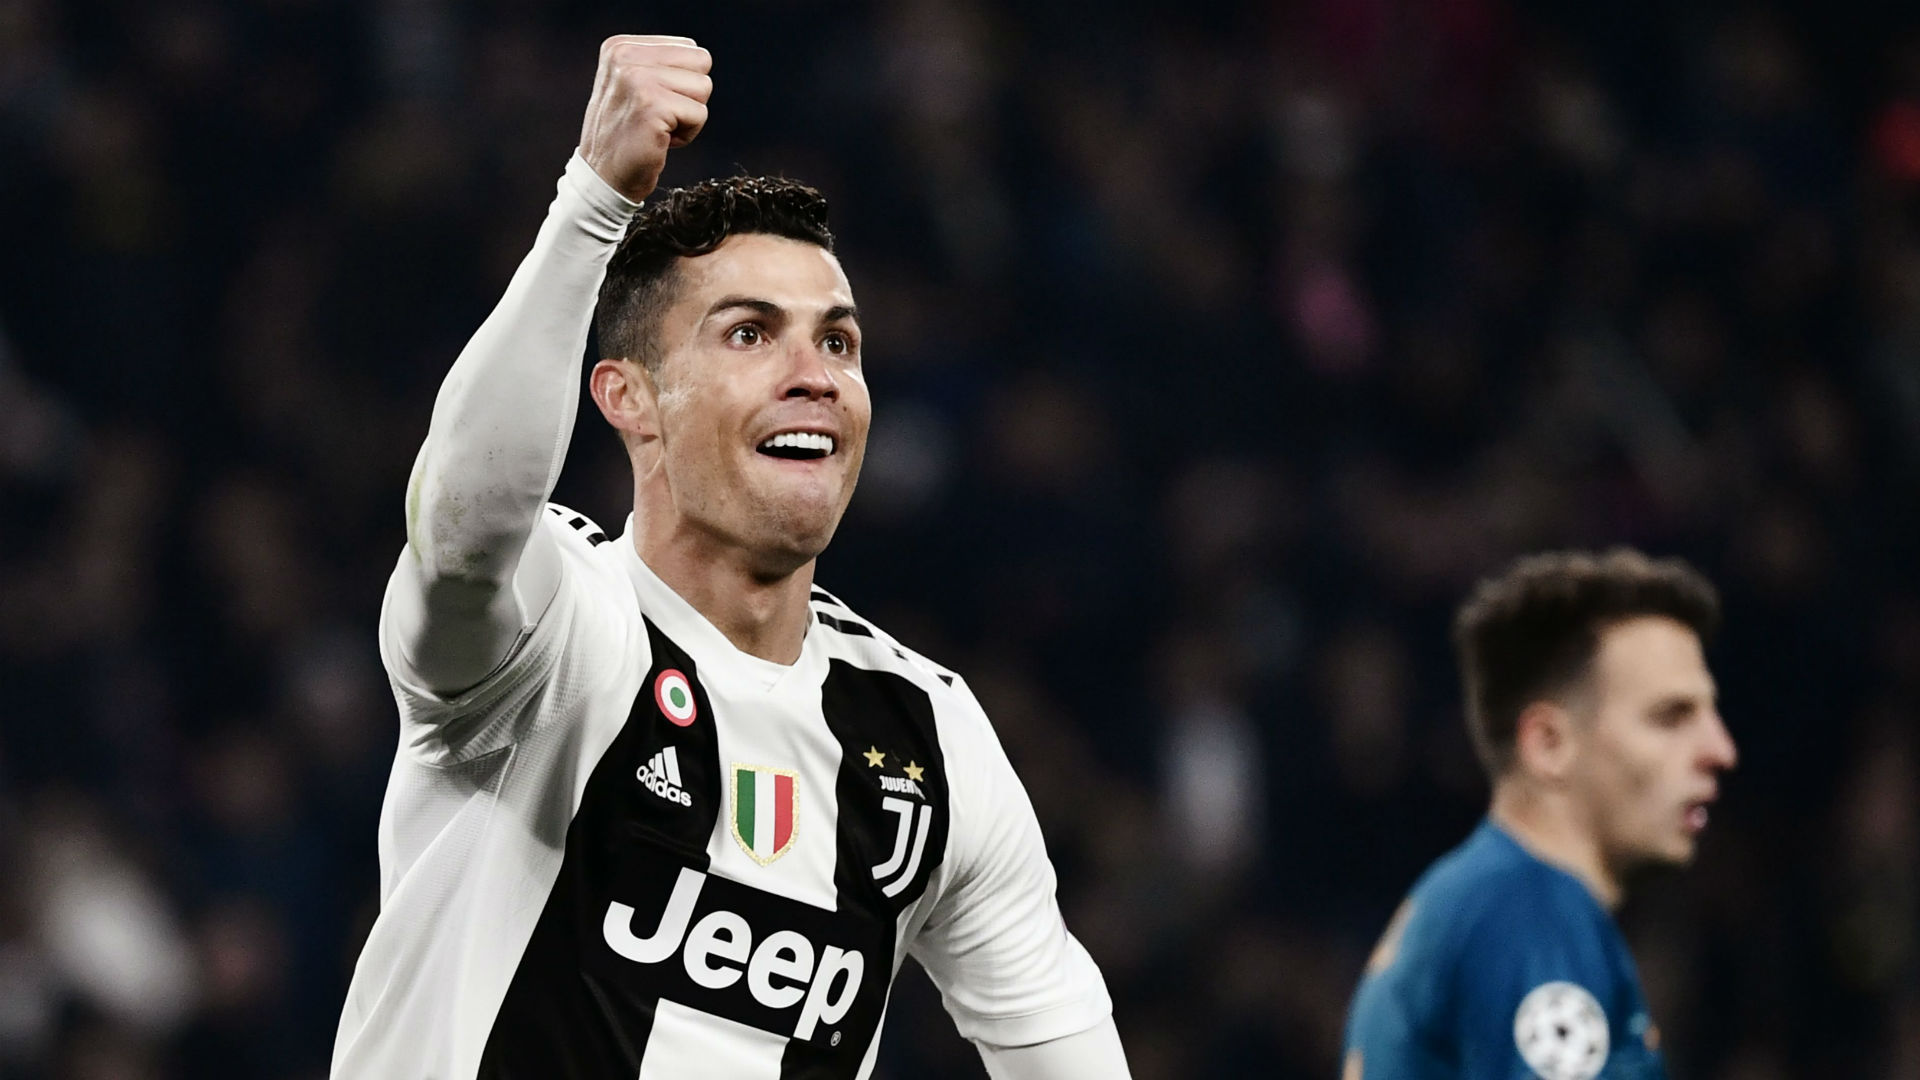 Juventus 3 0 Atletico Madrid Cristiano Ronaldo Hat Trick Proves He Is The Champions League Goat Goal Com